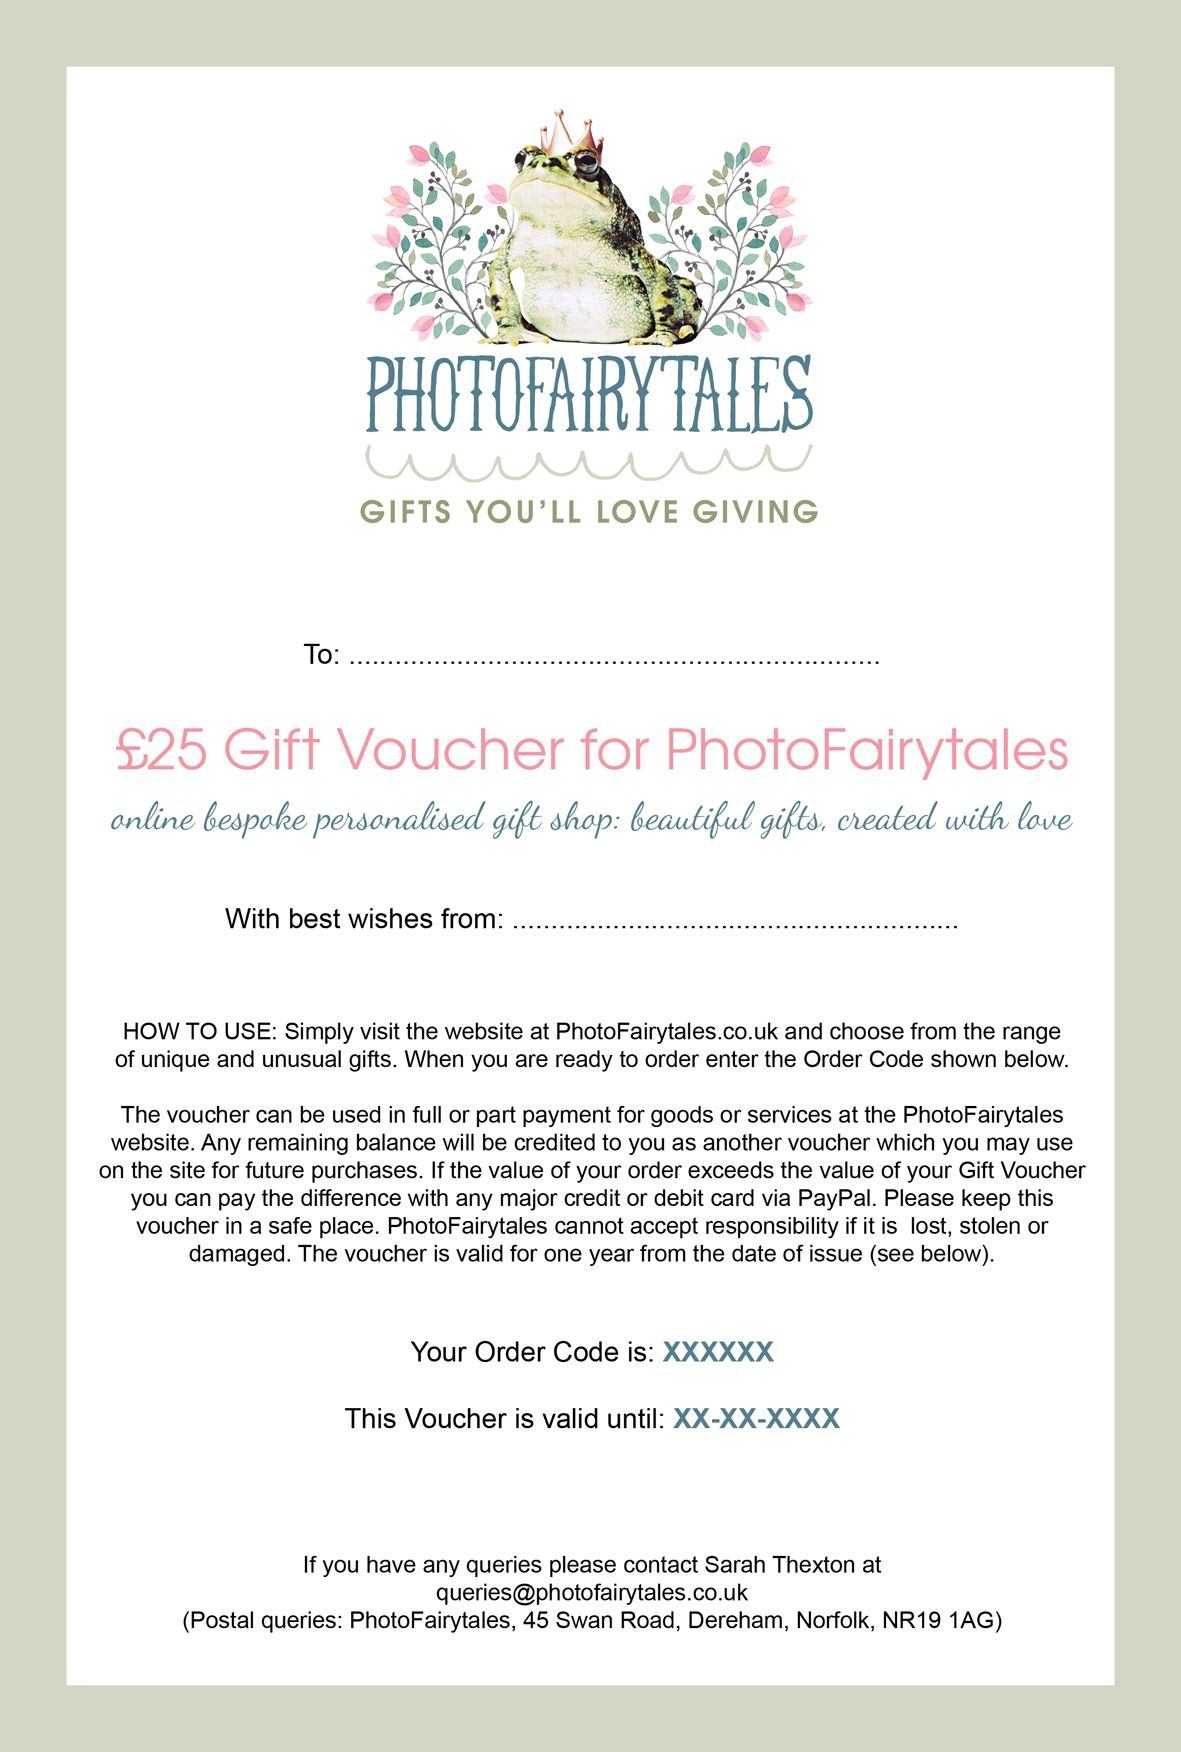 PhotoFairytales Gift Voucher